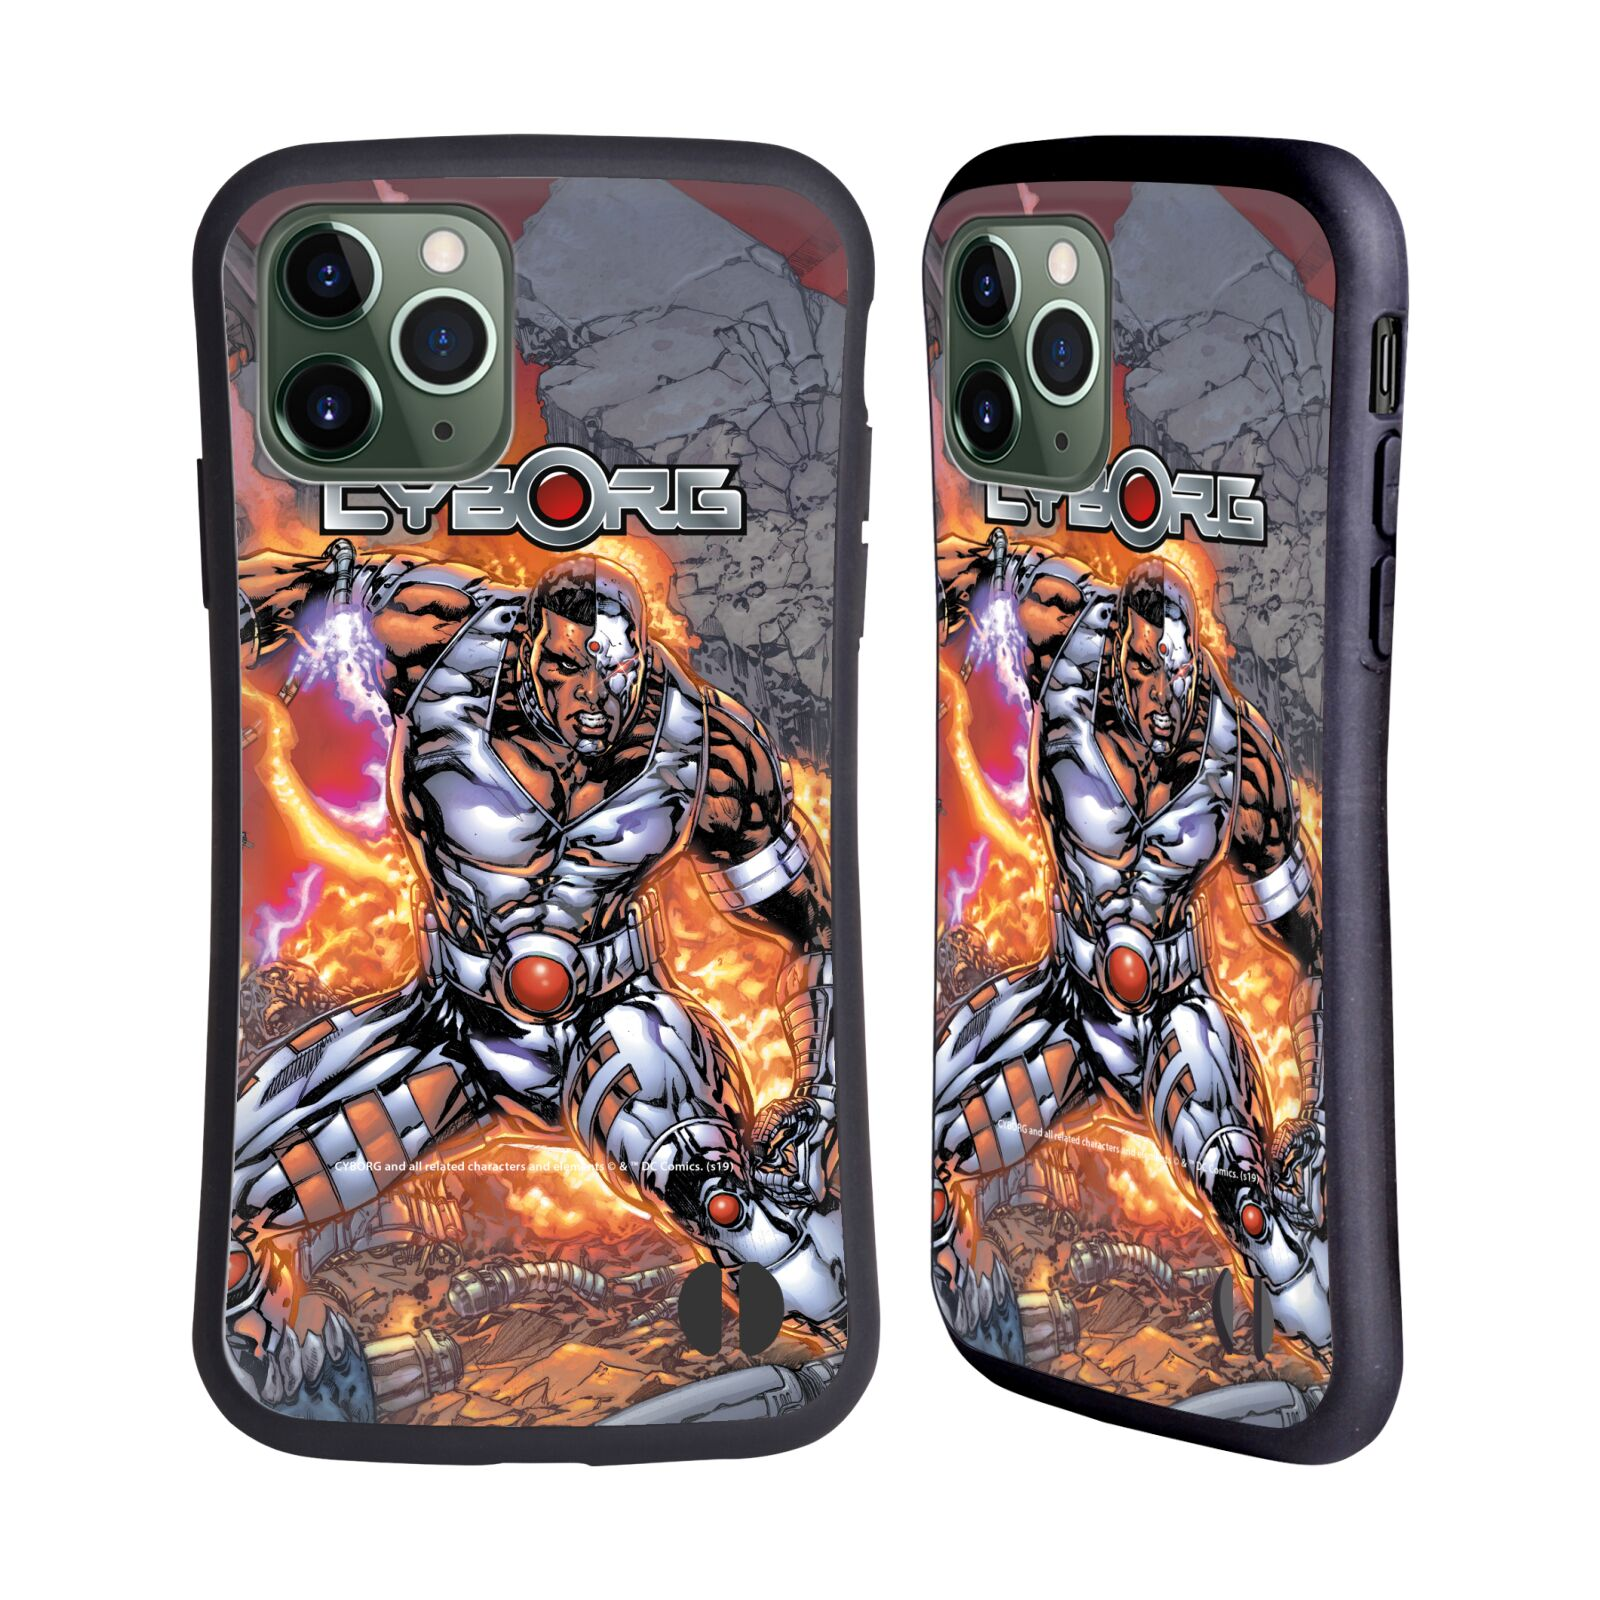 Official Cyborg DC Comics Fast Fashion Cover Hybrid Case for Apple iPhone 11 Pro